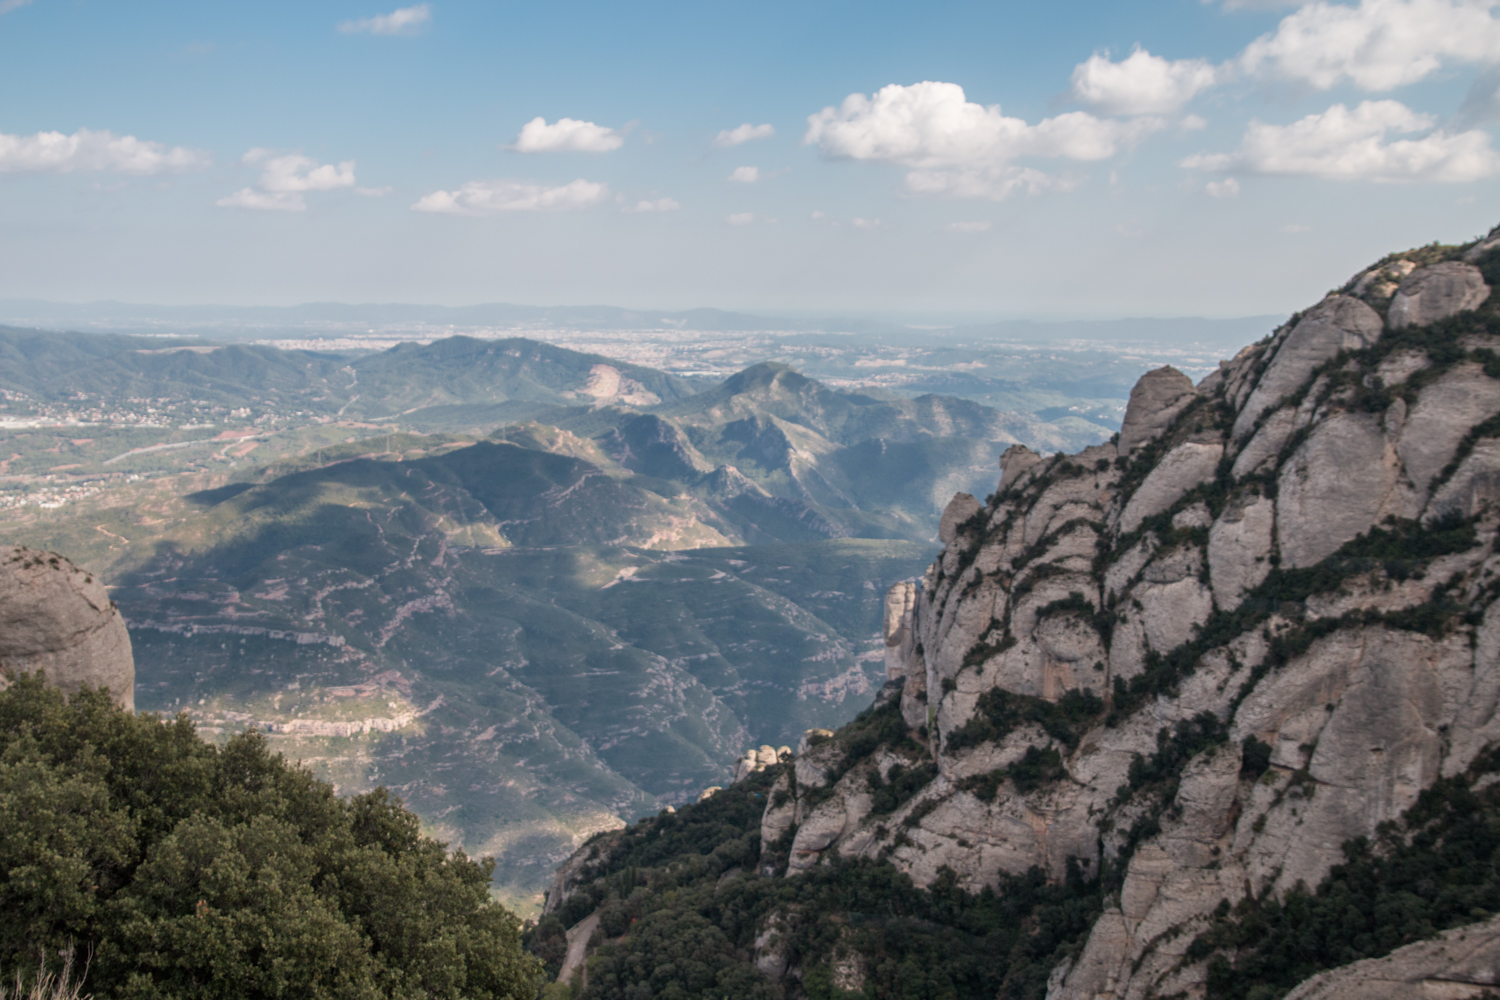 Hiking the route at Montserrat Barcelona to Sant Jeroni the highest point